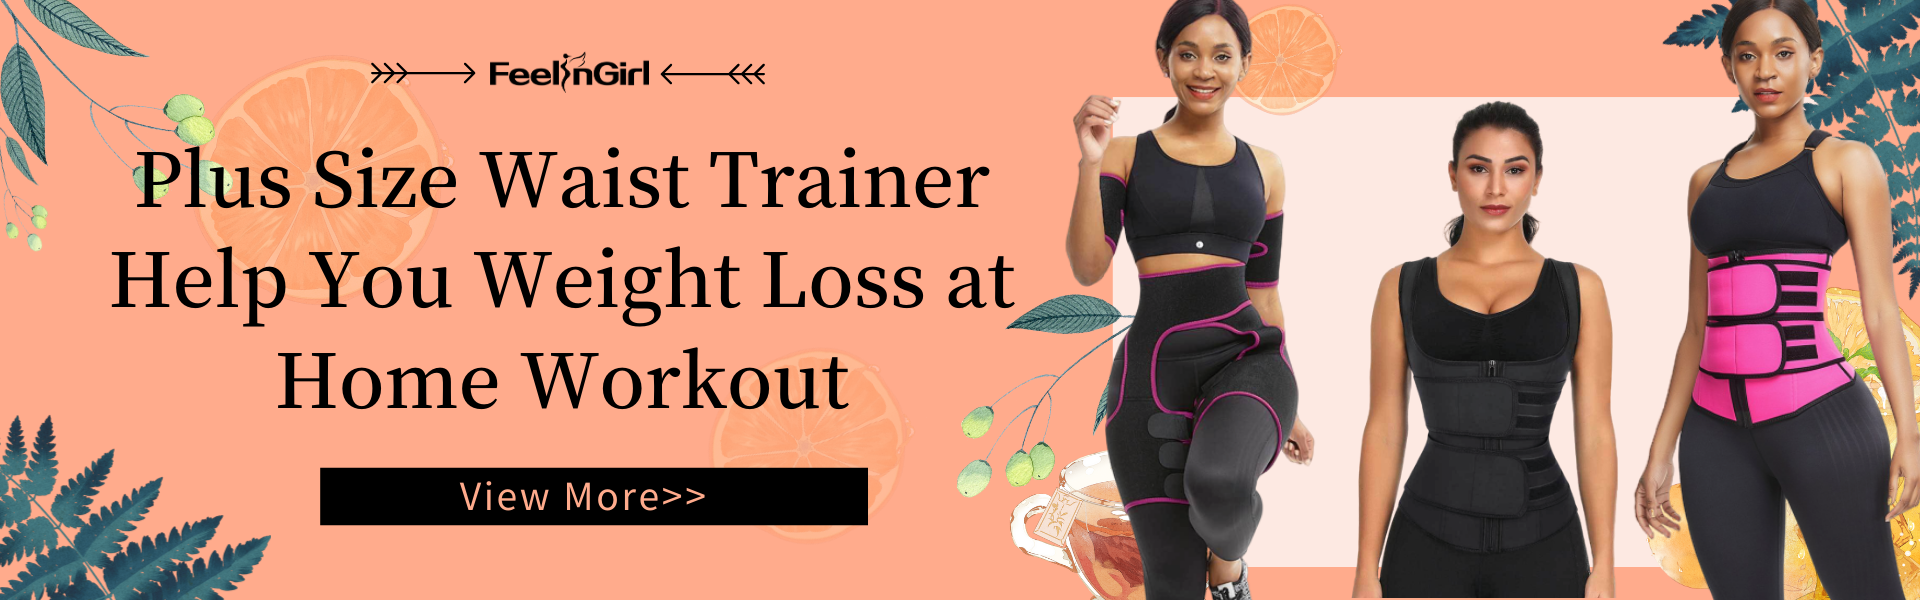 Plus Size Waist Trainer Help You Weight Loss at Home Workout